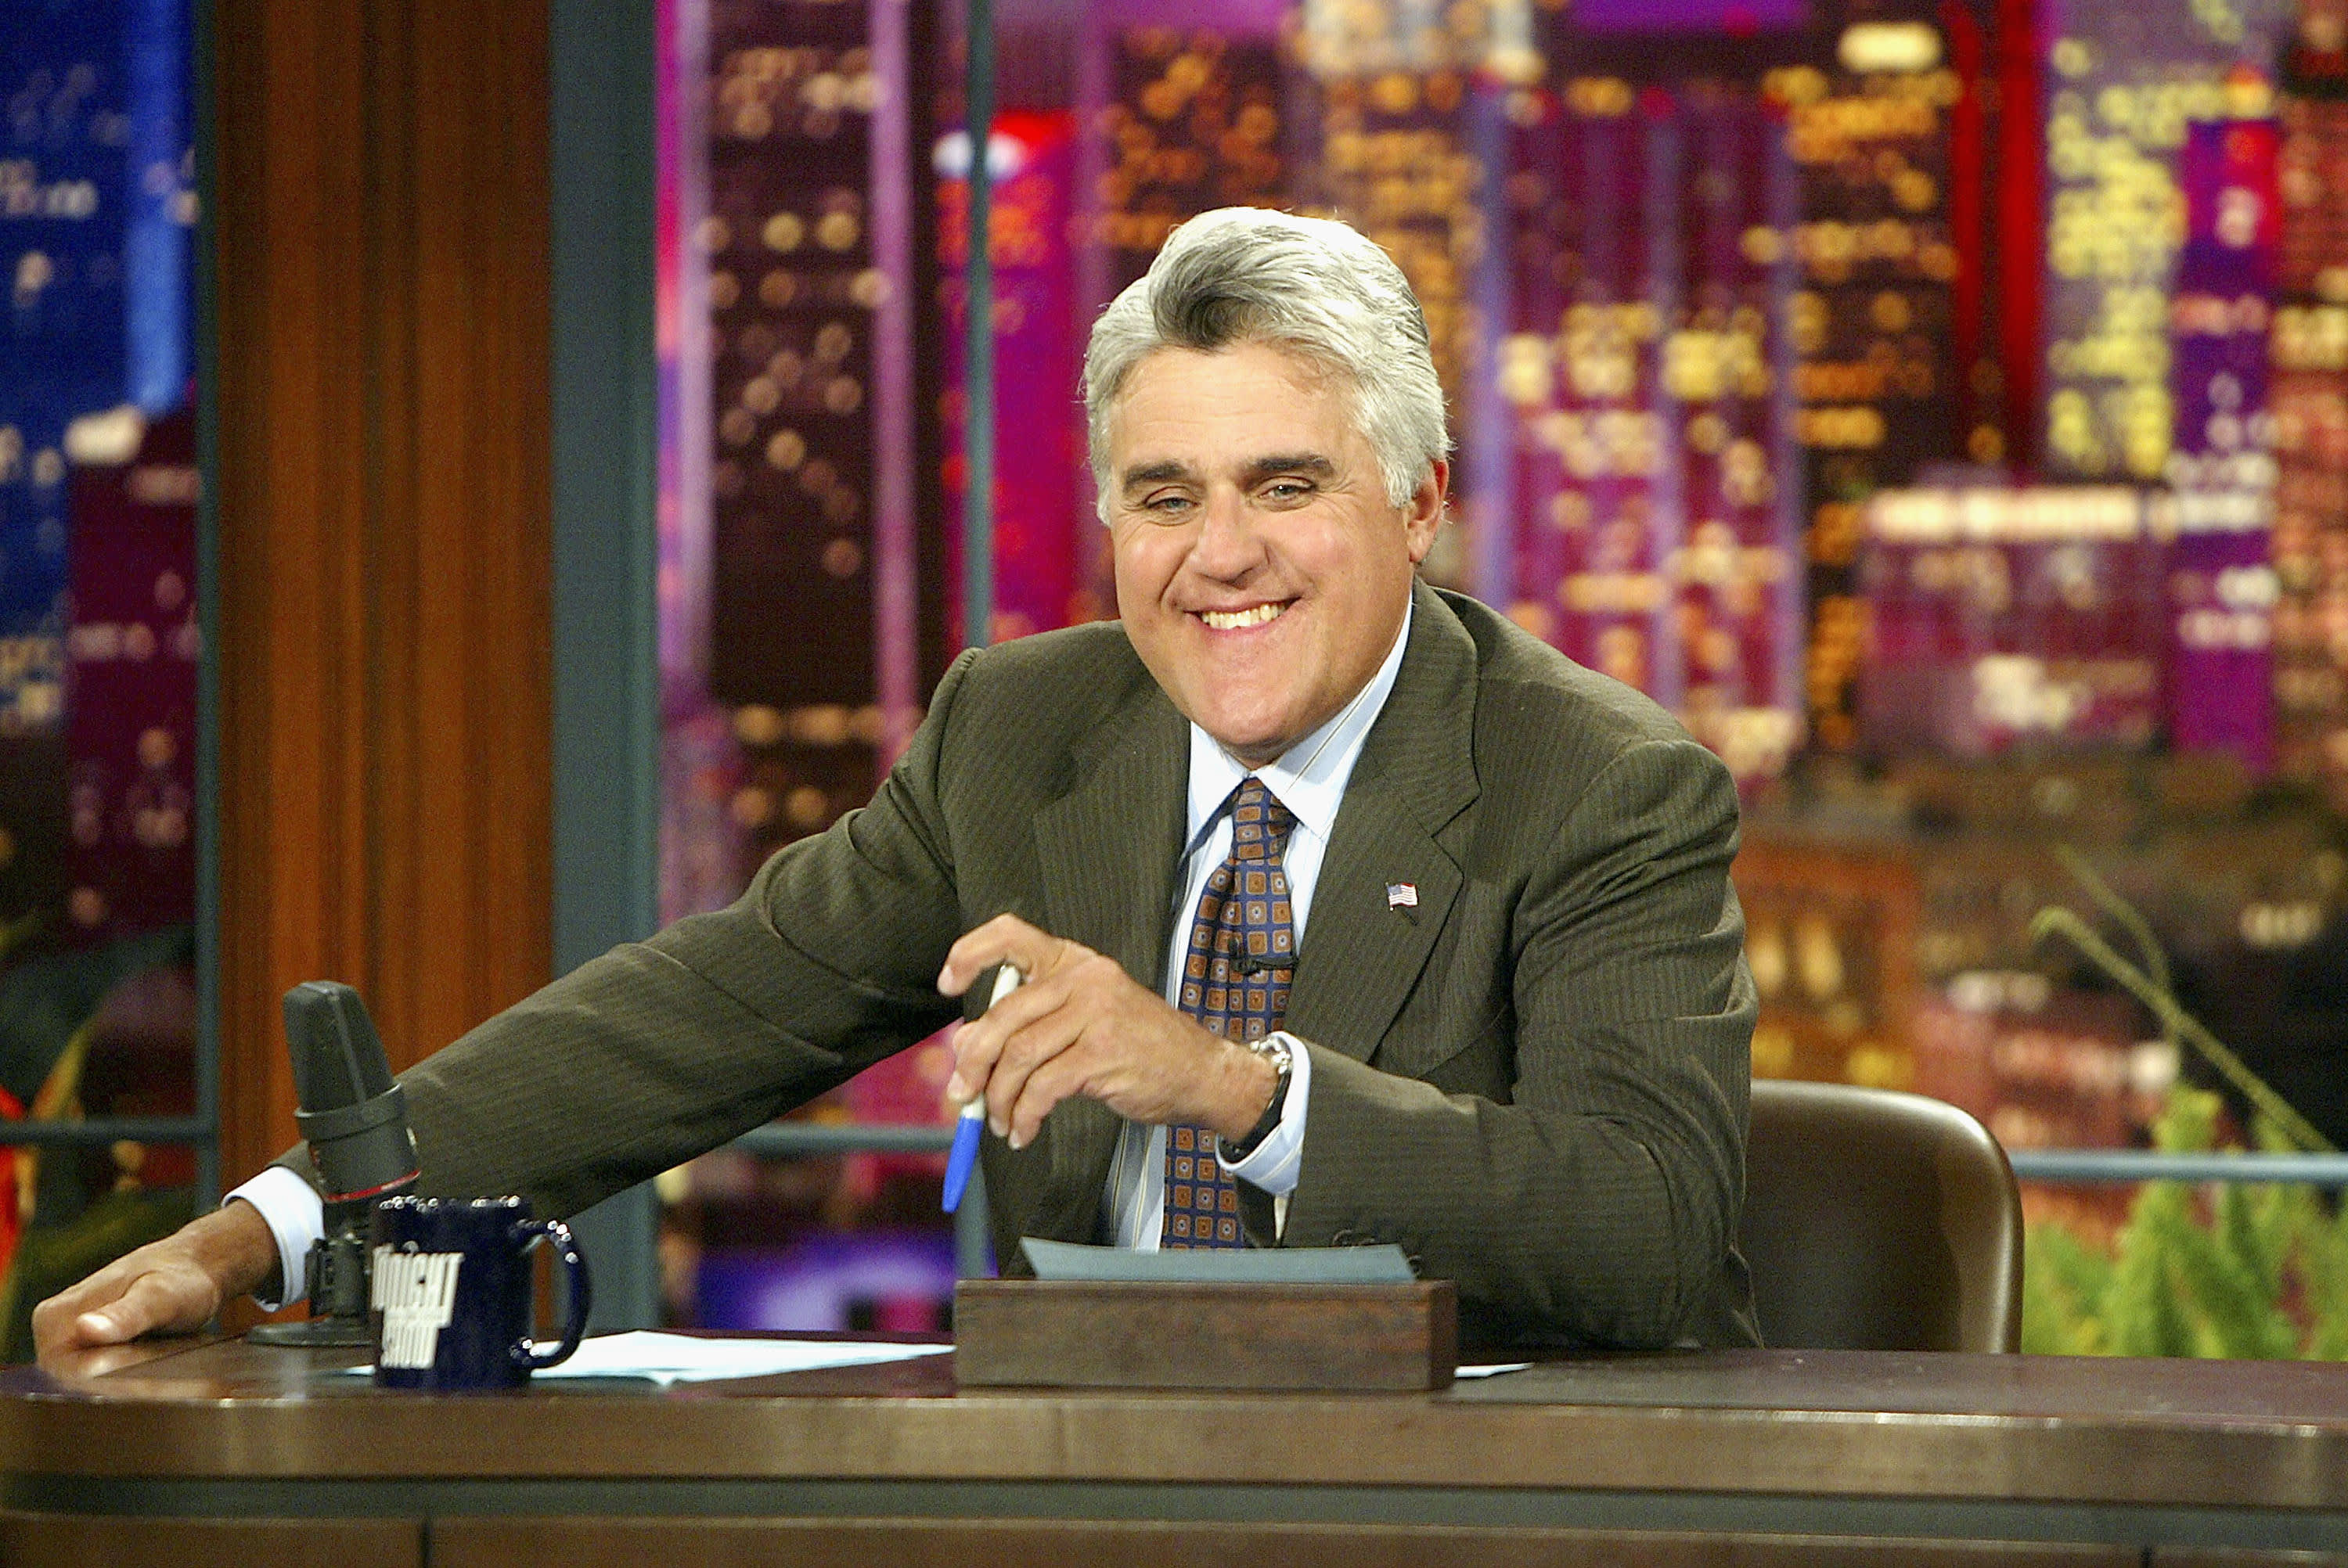 Where is jay leno going after the tonight show